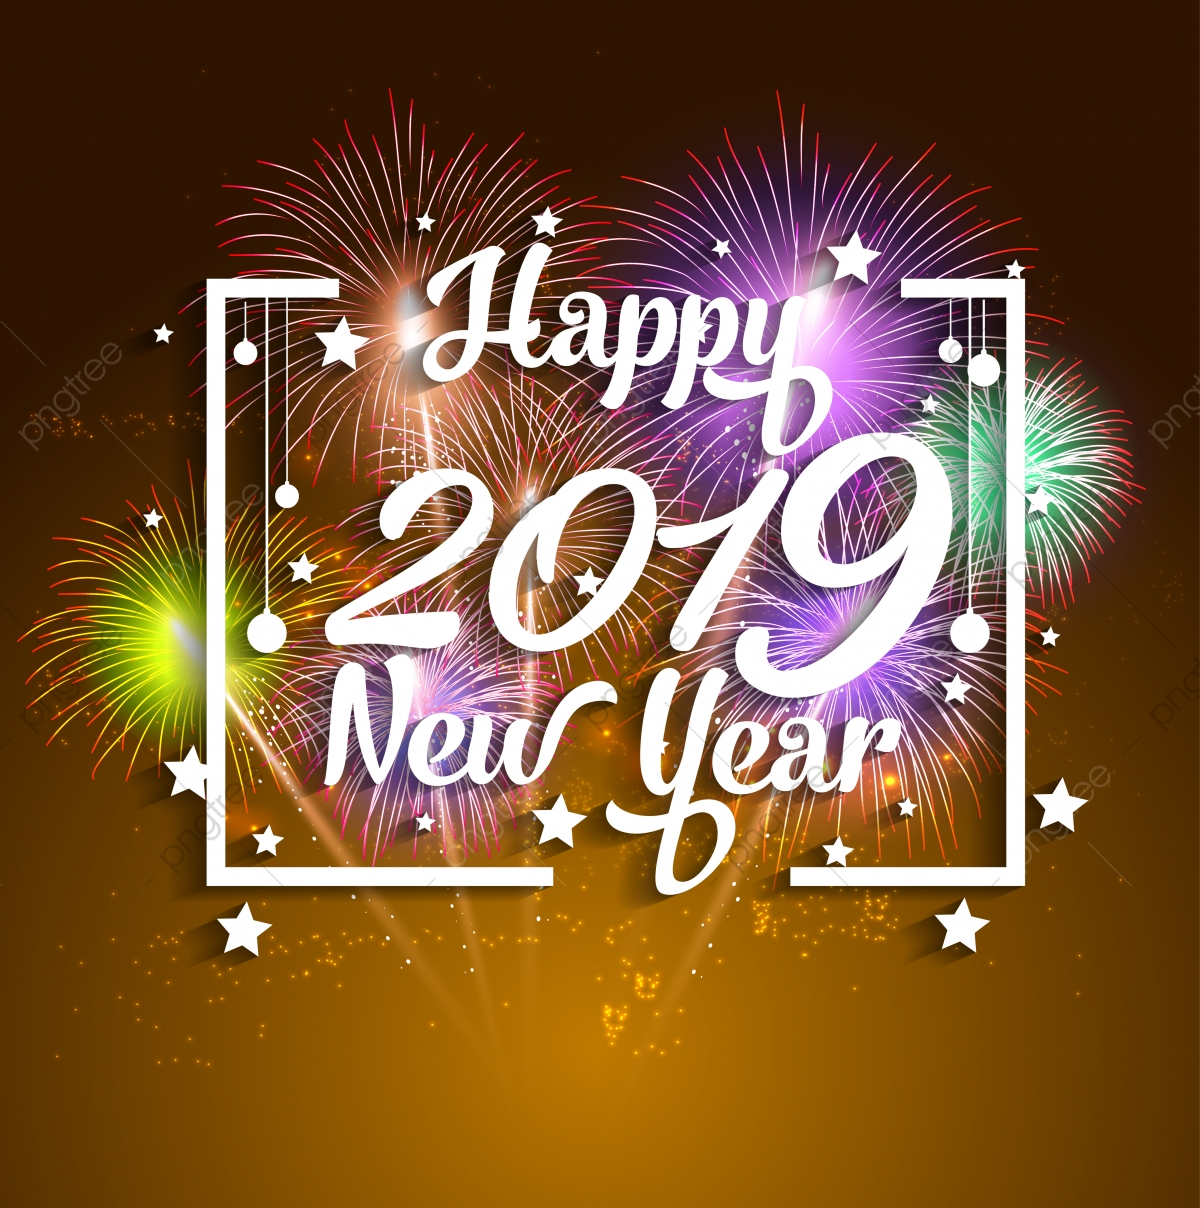 Picture new year 2019 download